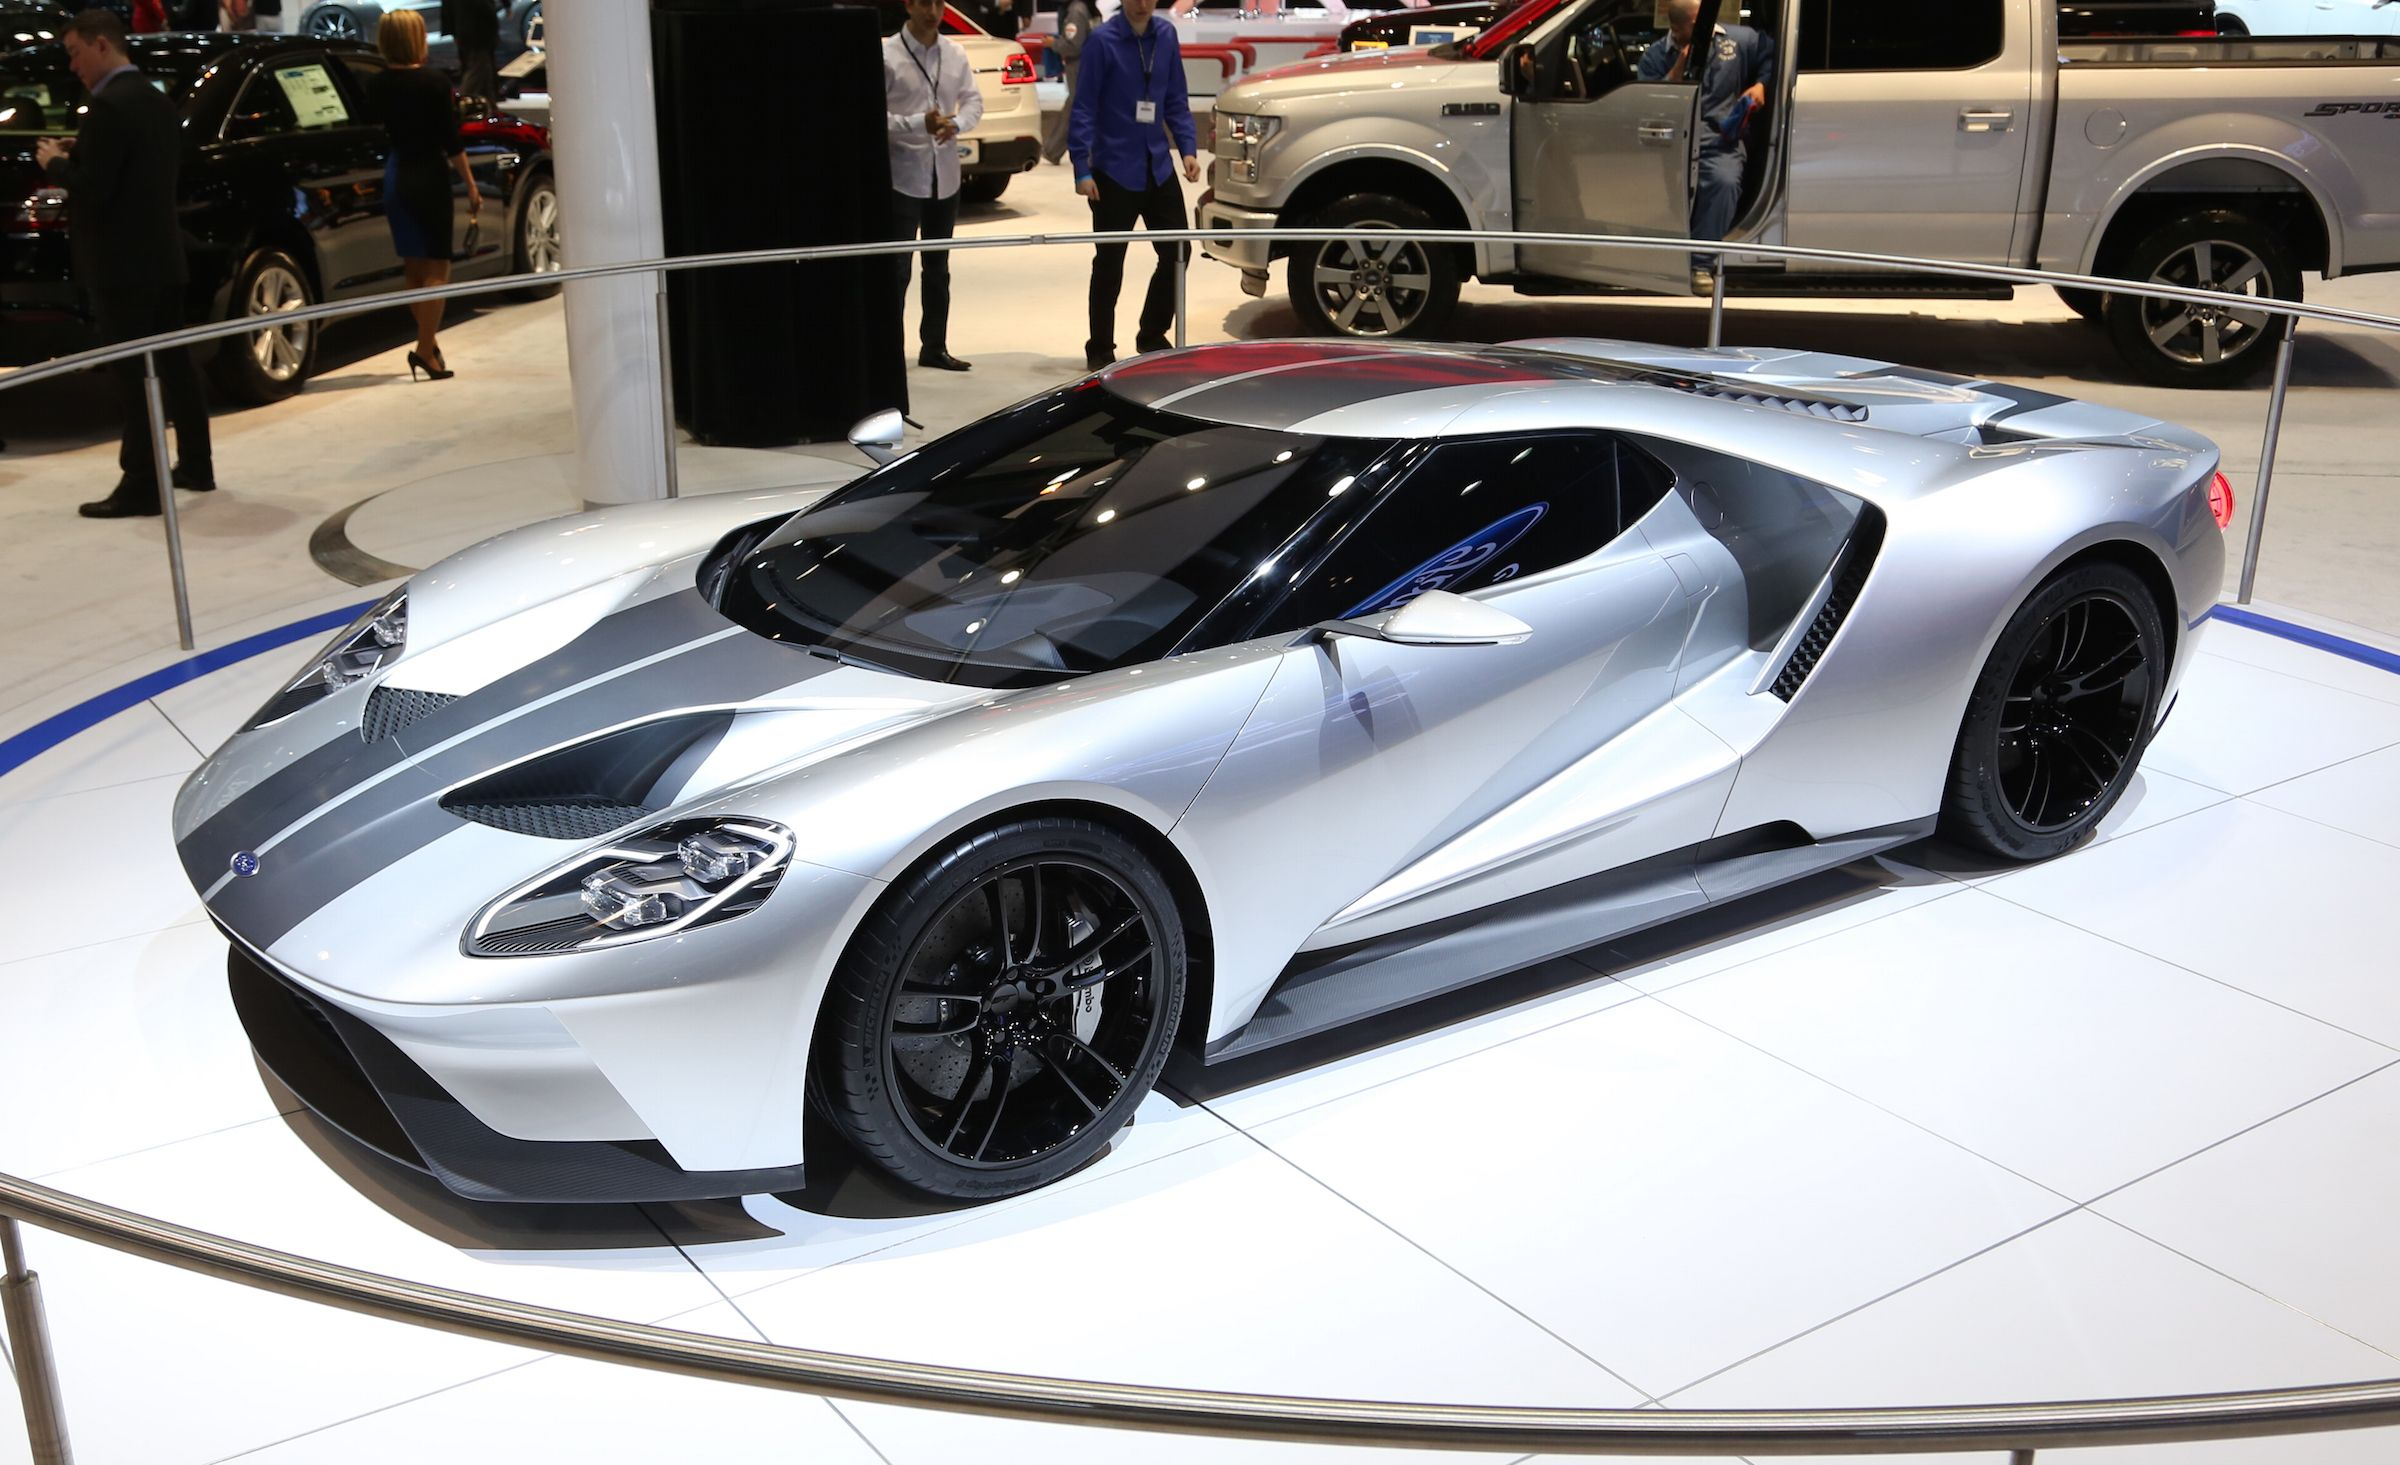 Silver Fox: The New Ford GT Looks Damn Good in Silver and Racing Stripes